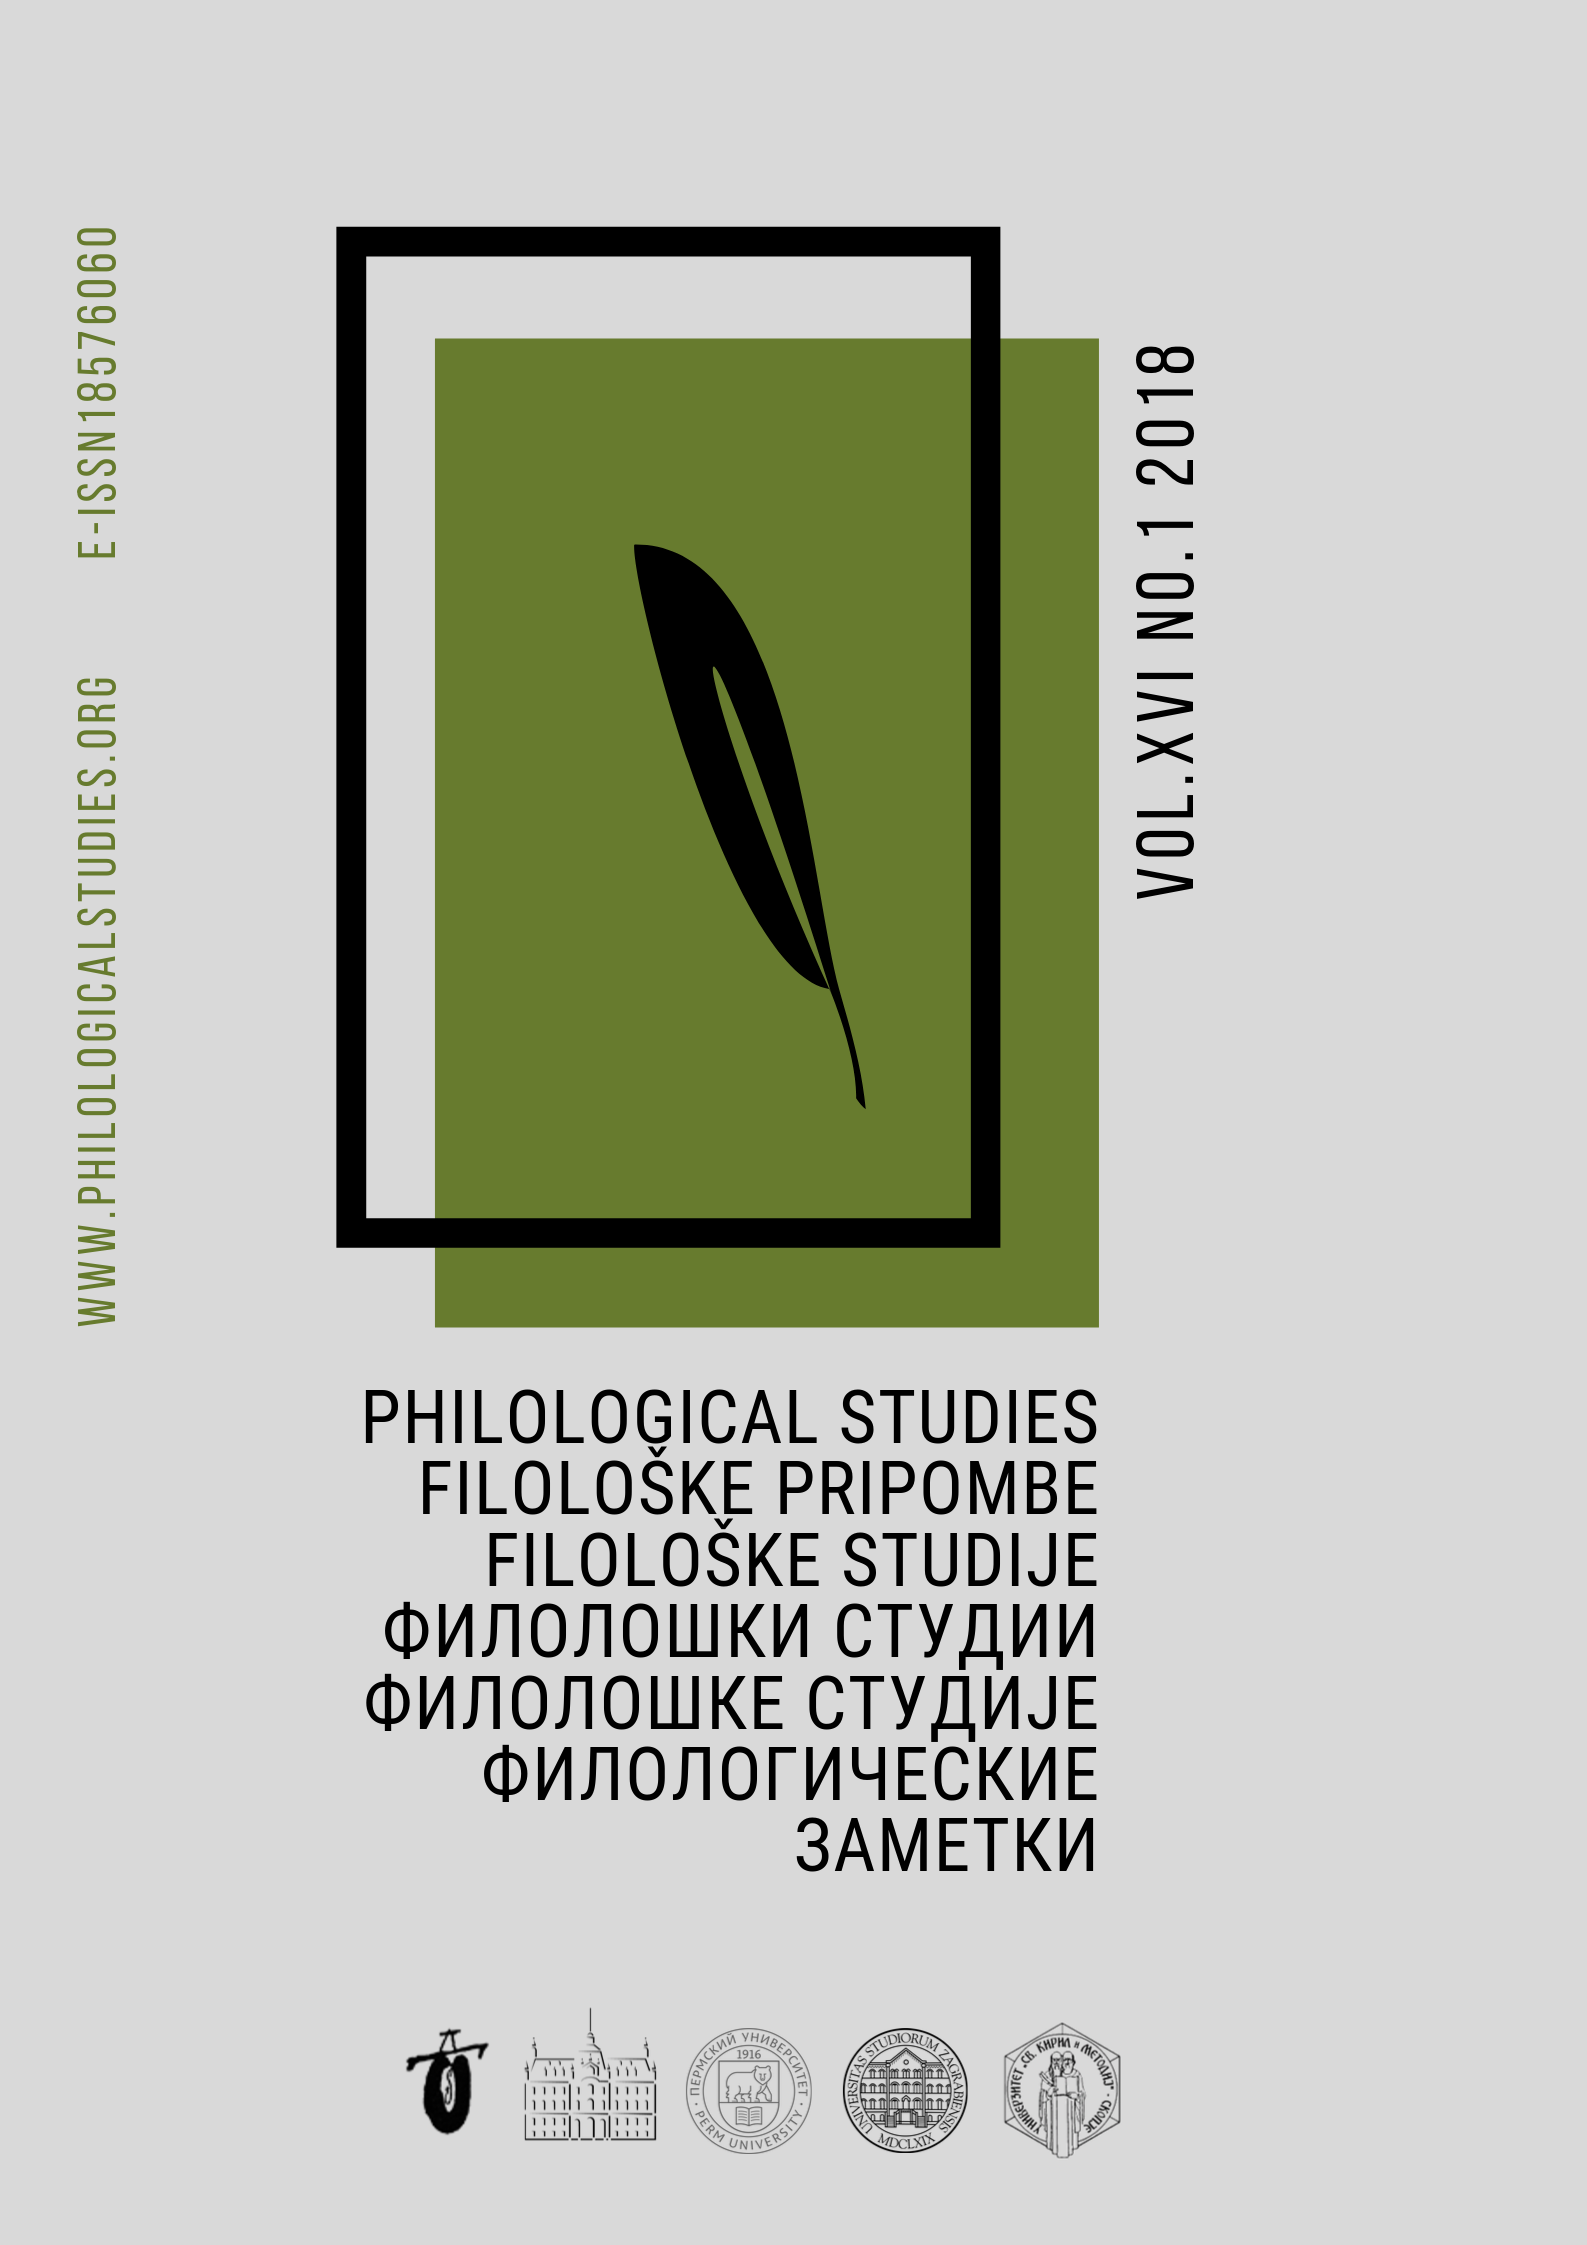 Philological Studies Vol.16 No.1 2018